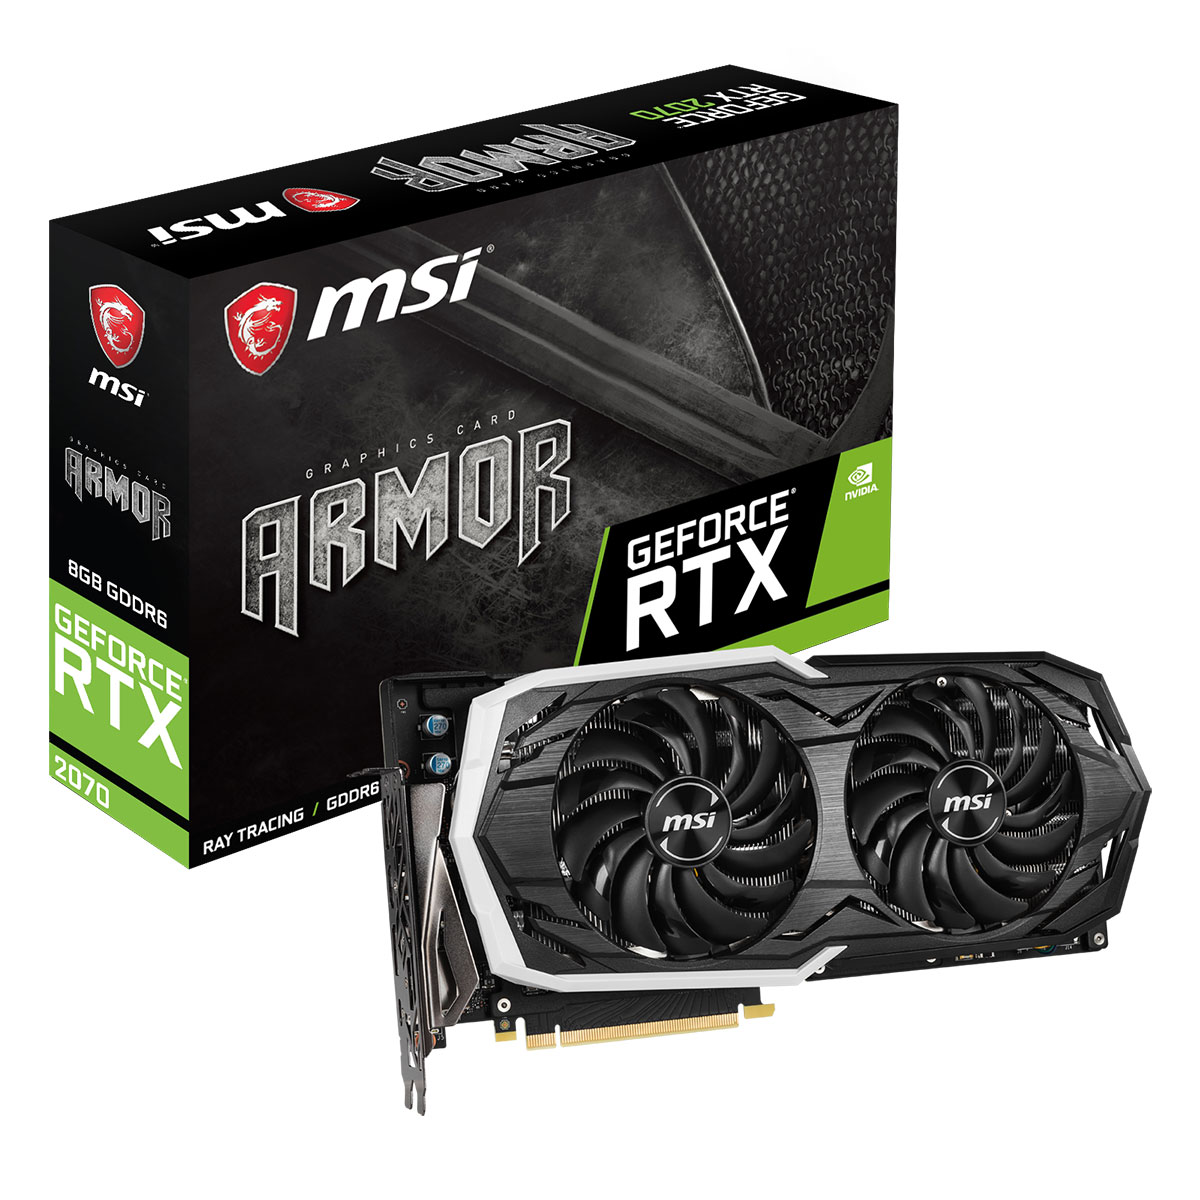 Carte graphique MSI GeForce RTX 2070 ARMOR 8G 8 Go GDDR6 - HDMI/Tri DisplayPort/USB Type-C - PCI Express (NVIDIA GeForce RTX 2070)